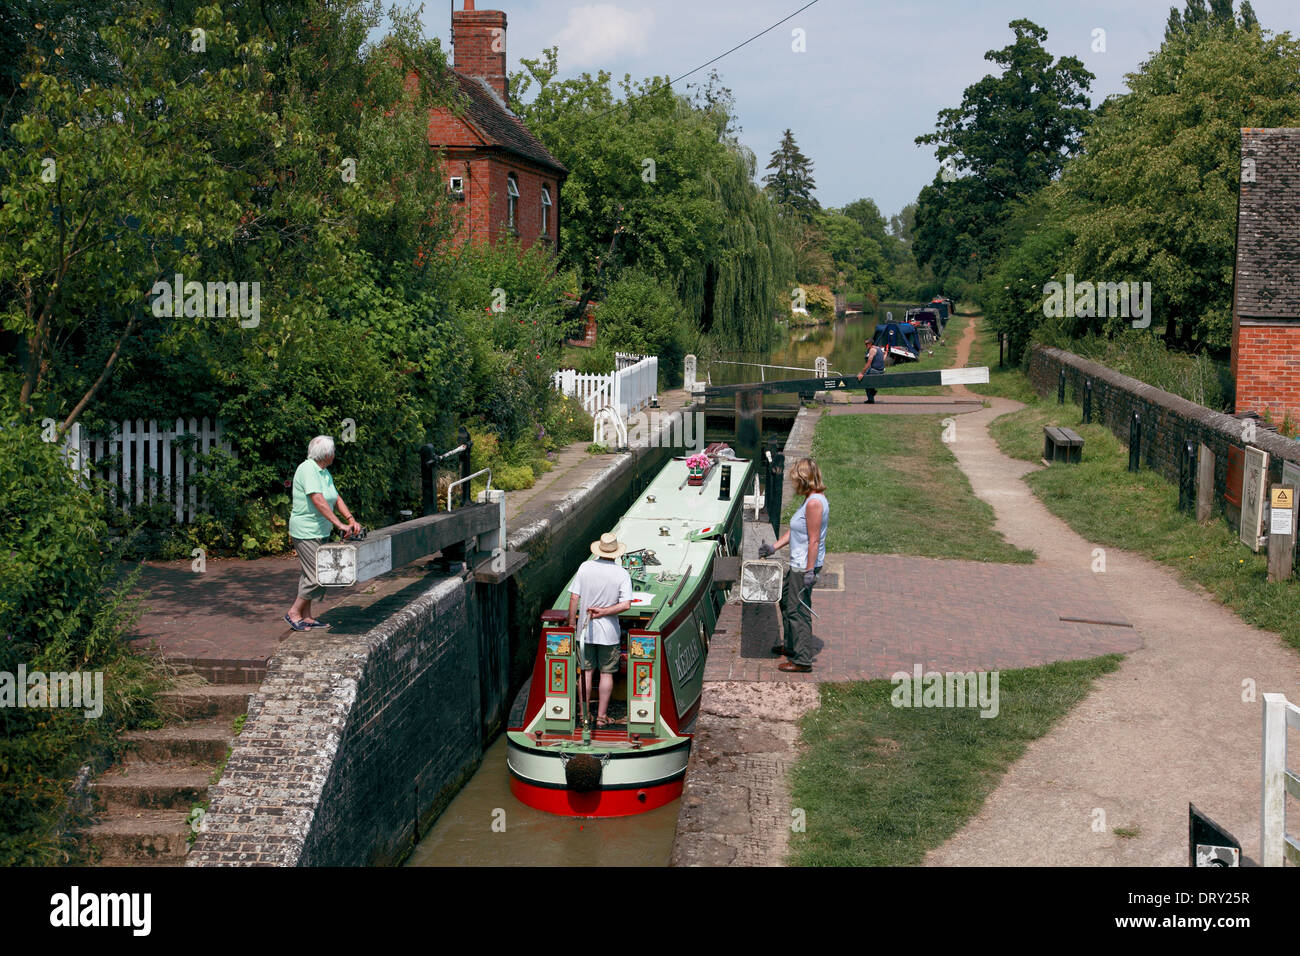 A narrowboat entering Cropredy Lock and about to go under Cropredy Lock Bridge on the Oxford Canal in Cropredy, Oxfordshire - Stock Image